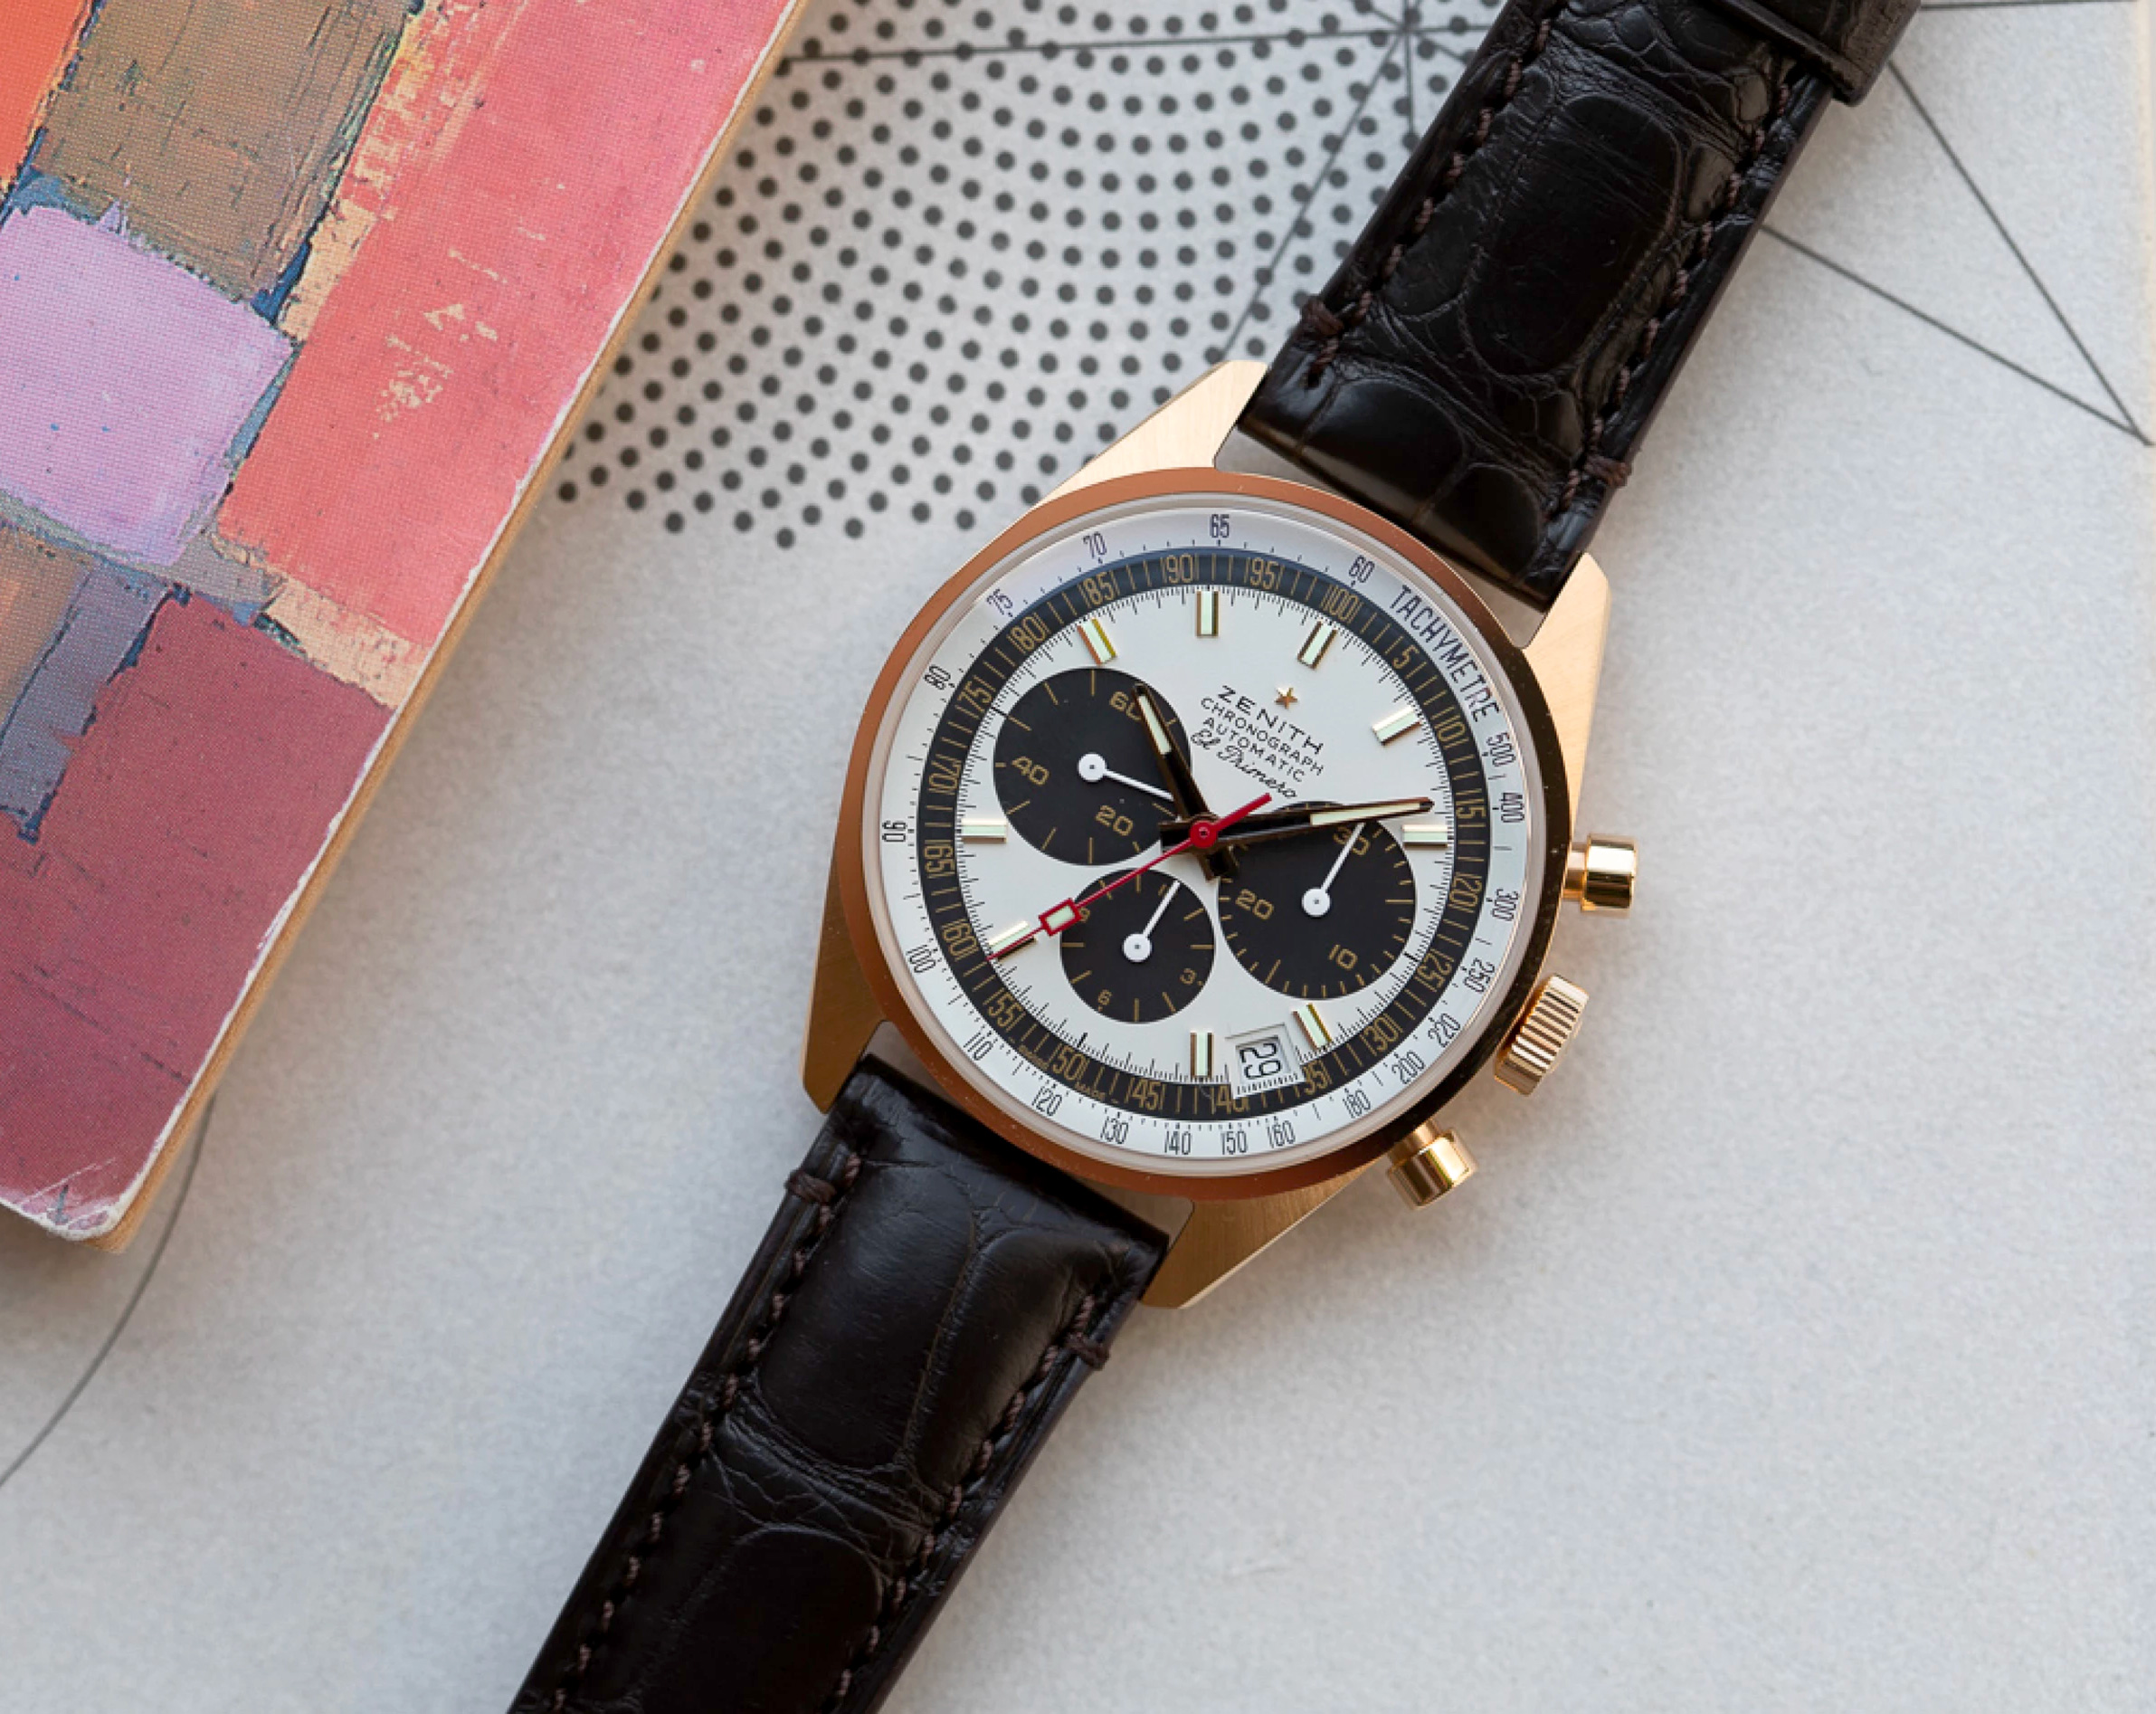 Zenith Celebrates 50 Years of Innovation with the El Primero Revival G381 at werd.com